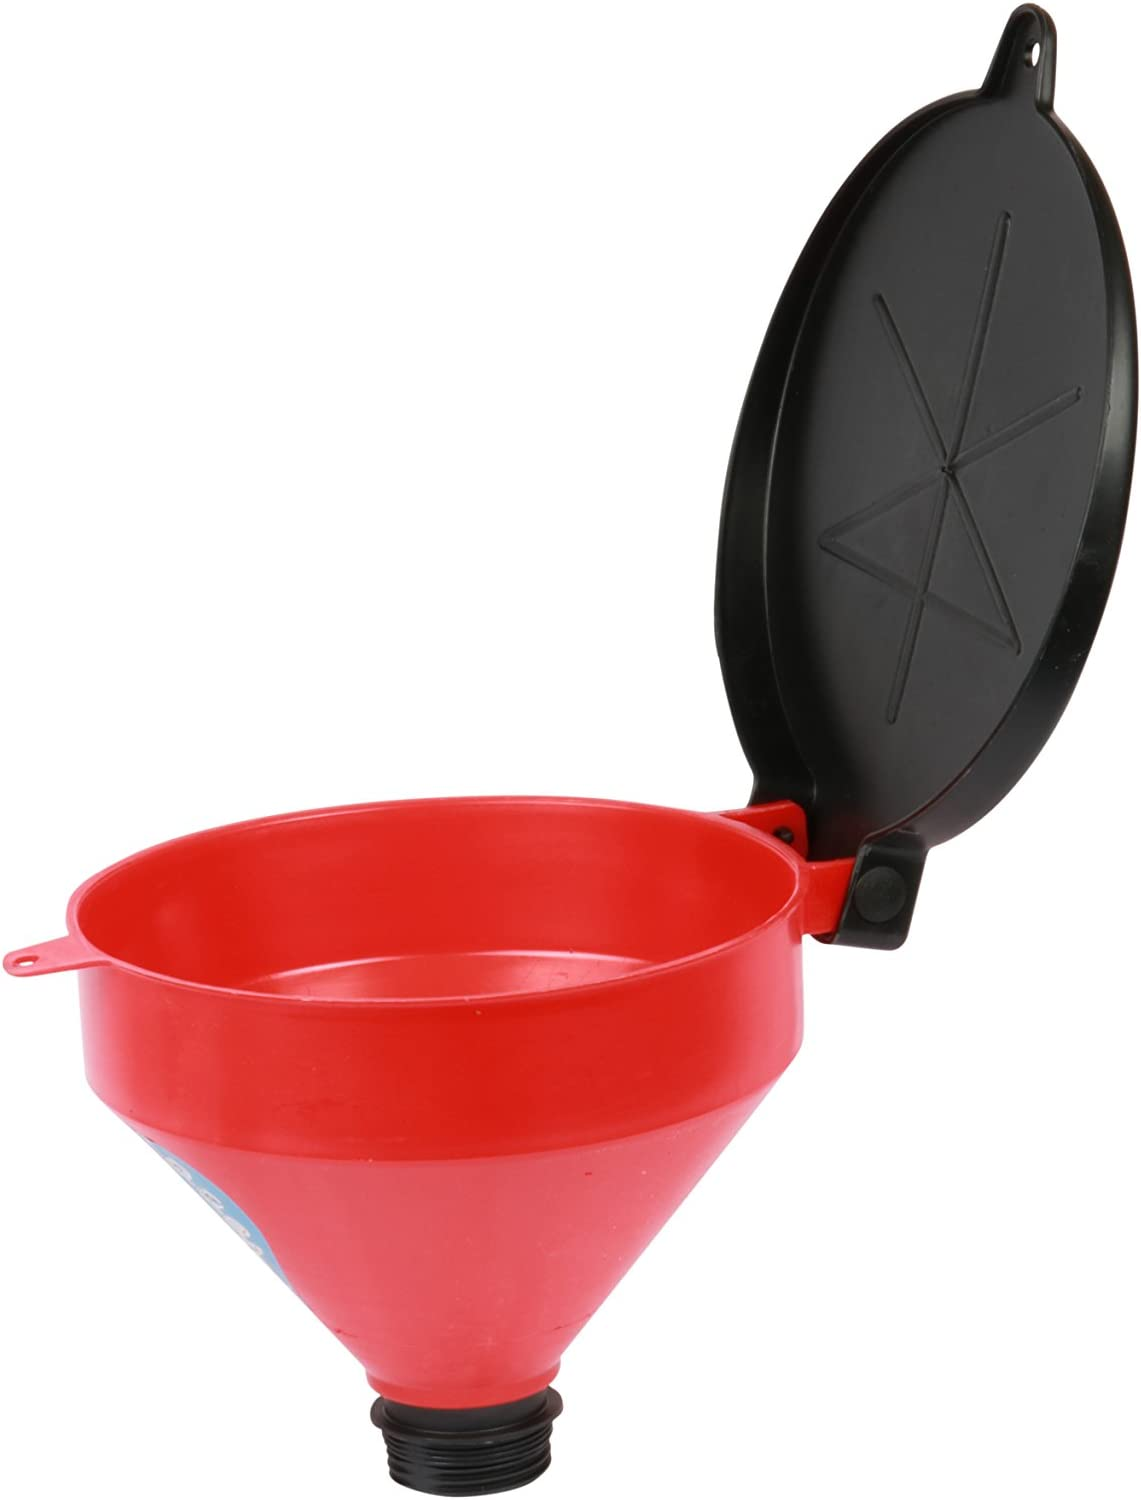 "Funnel King 32425 Drum Funnel with Screen and Lockable Lid – Spout Length 1 3/8"" with 4 Quart Capacity, Spill-Free and Polyethylene Funnel with Hang Hole for Storage"